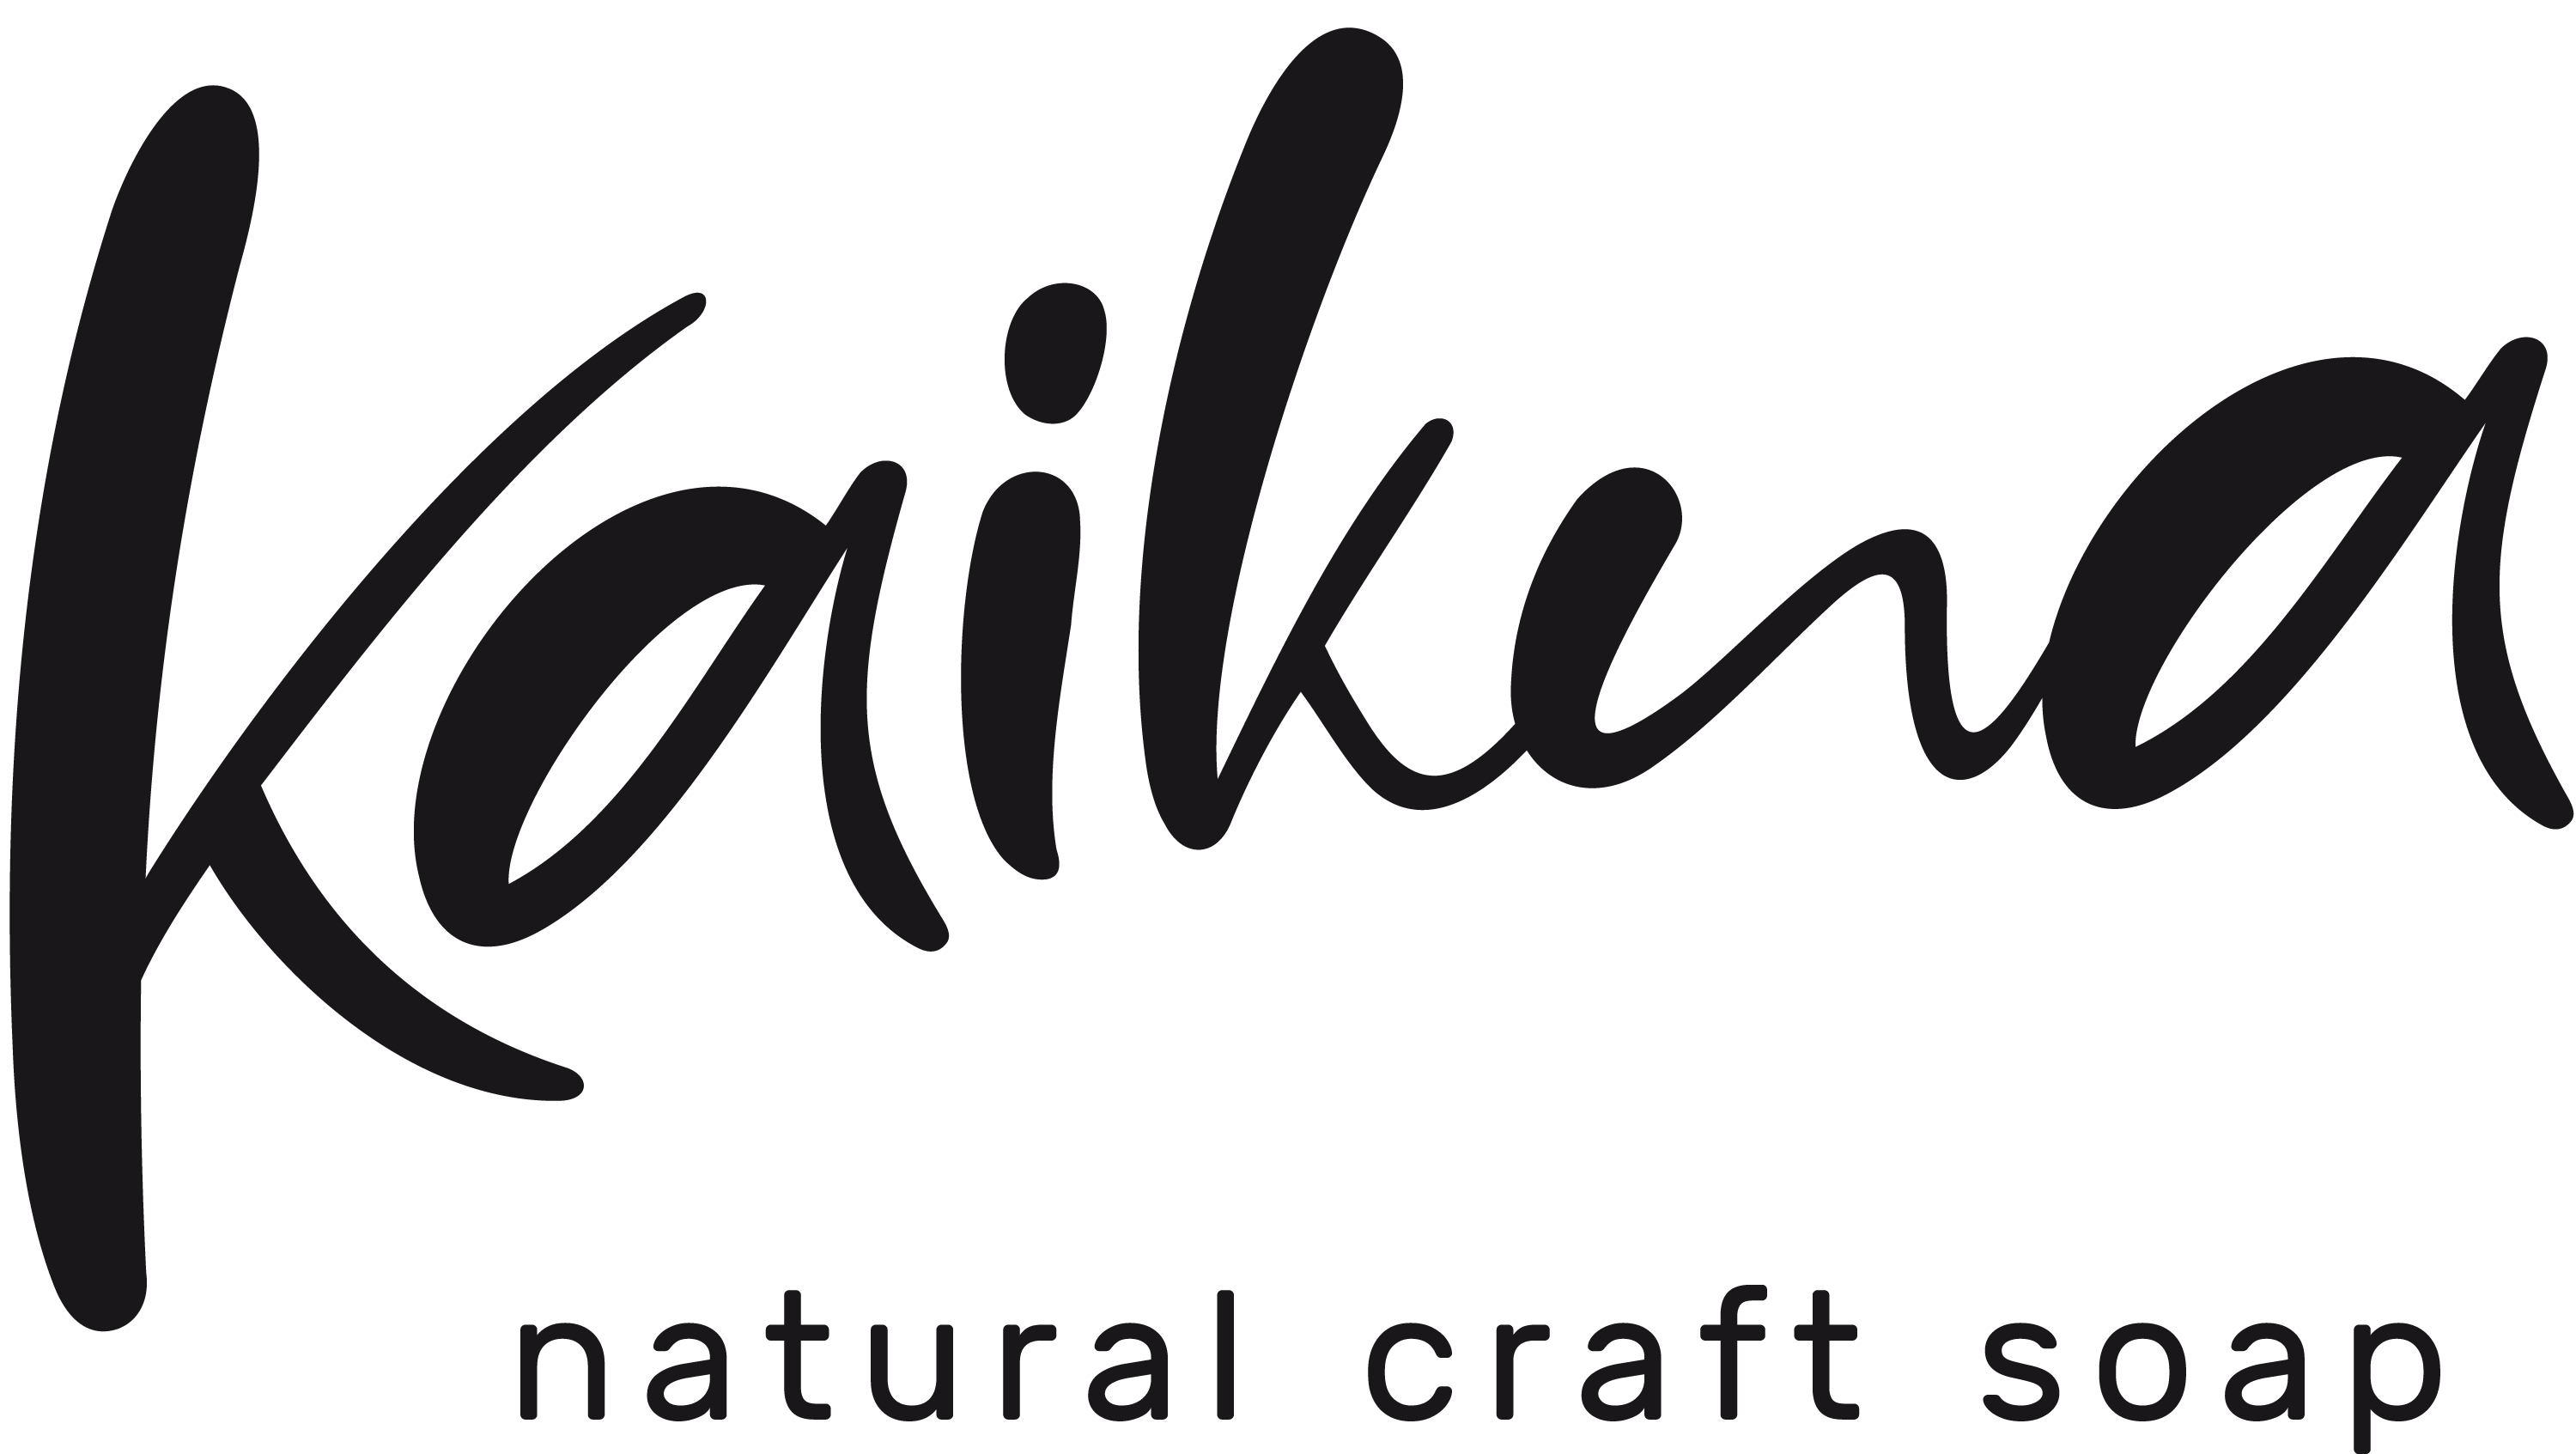 kaikua – natural craft soap